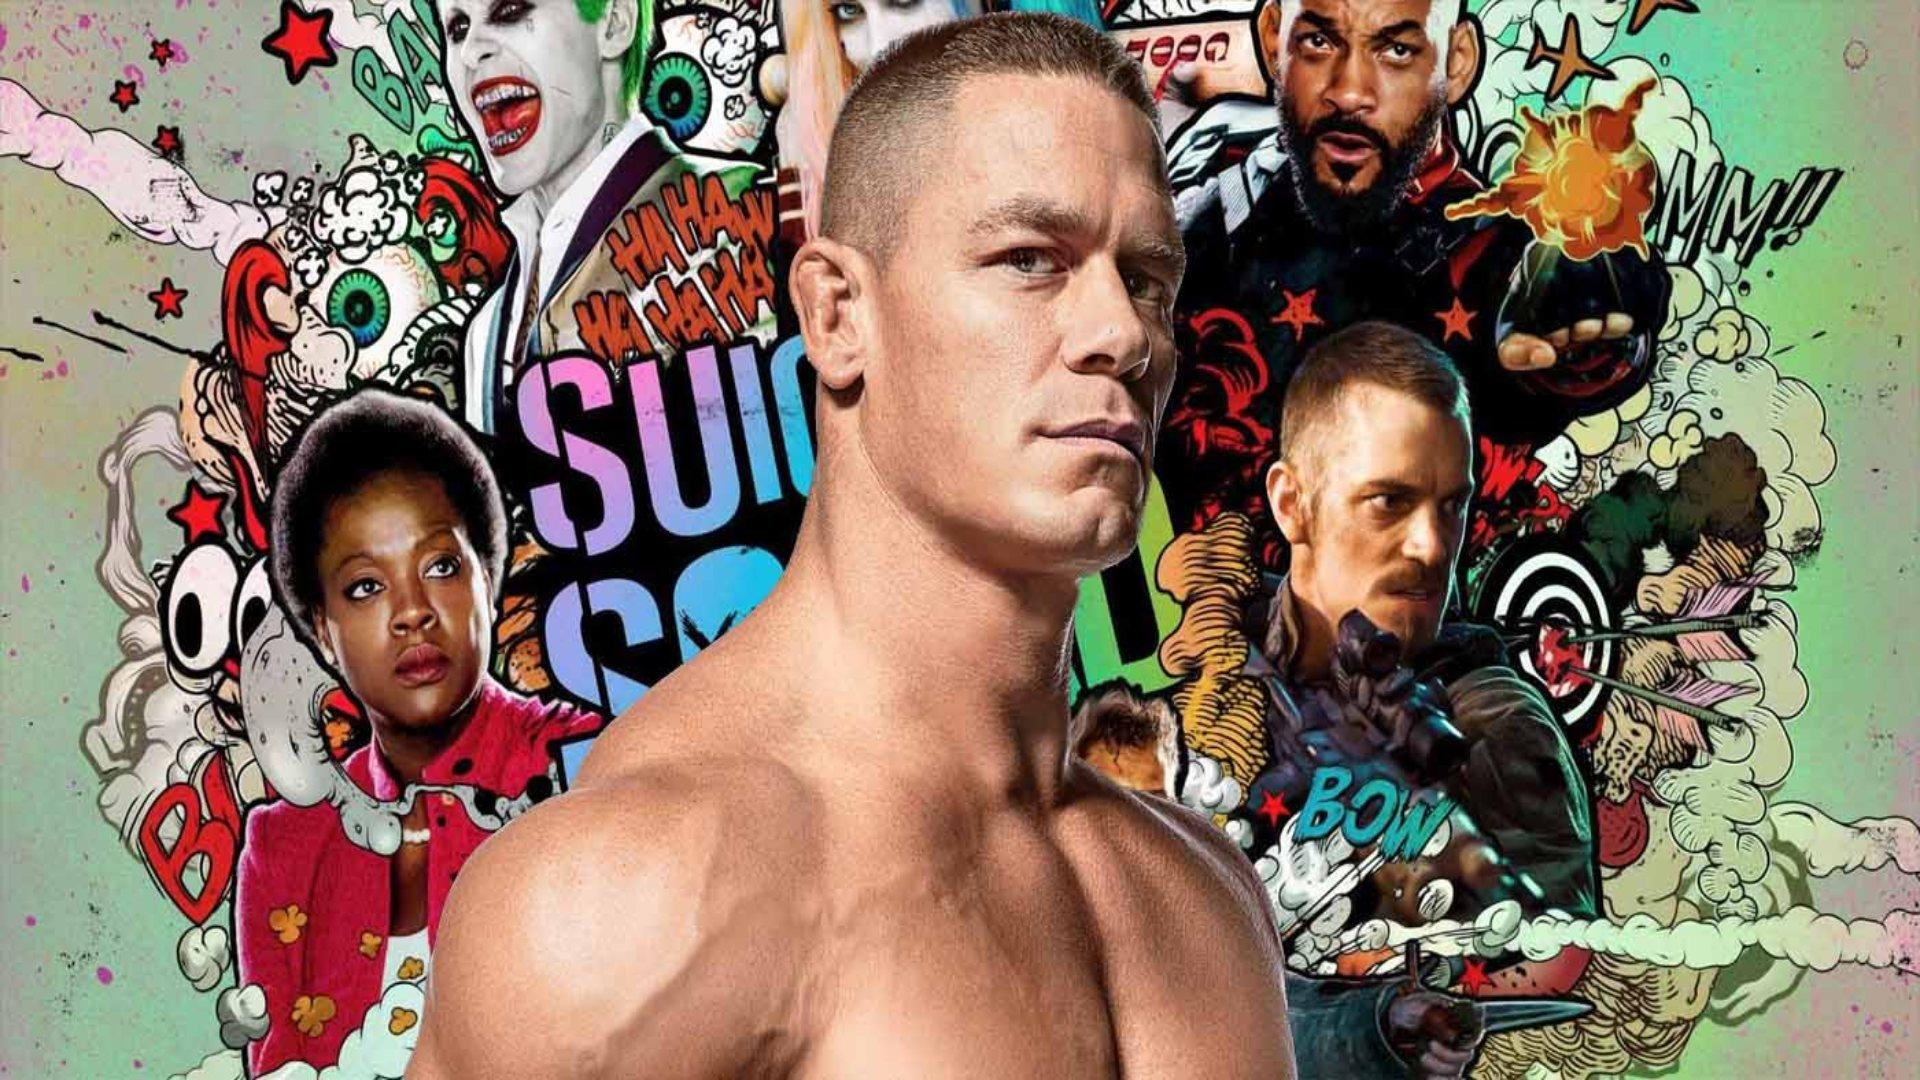 John Cena Peacemaker Backgrounds